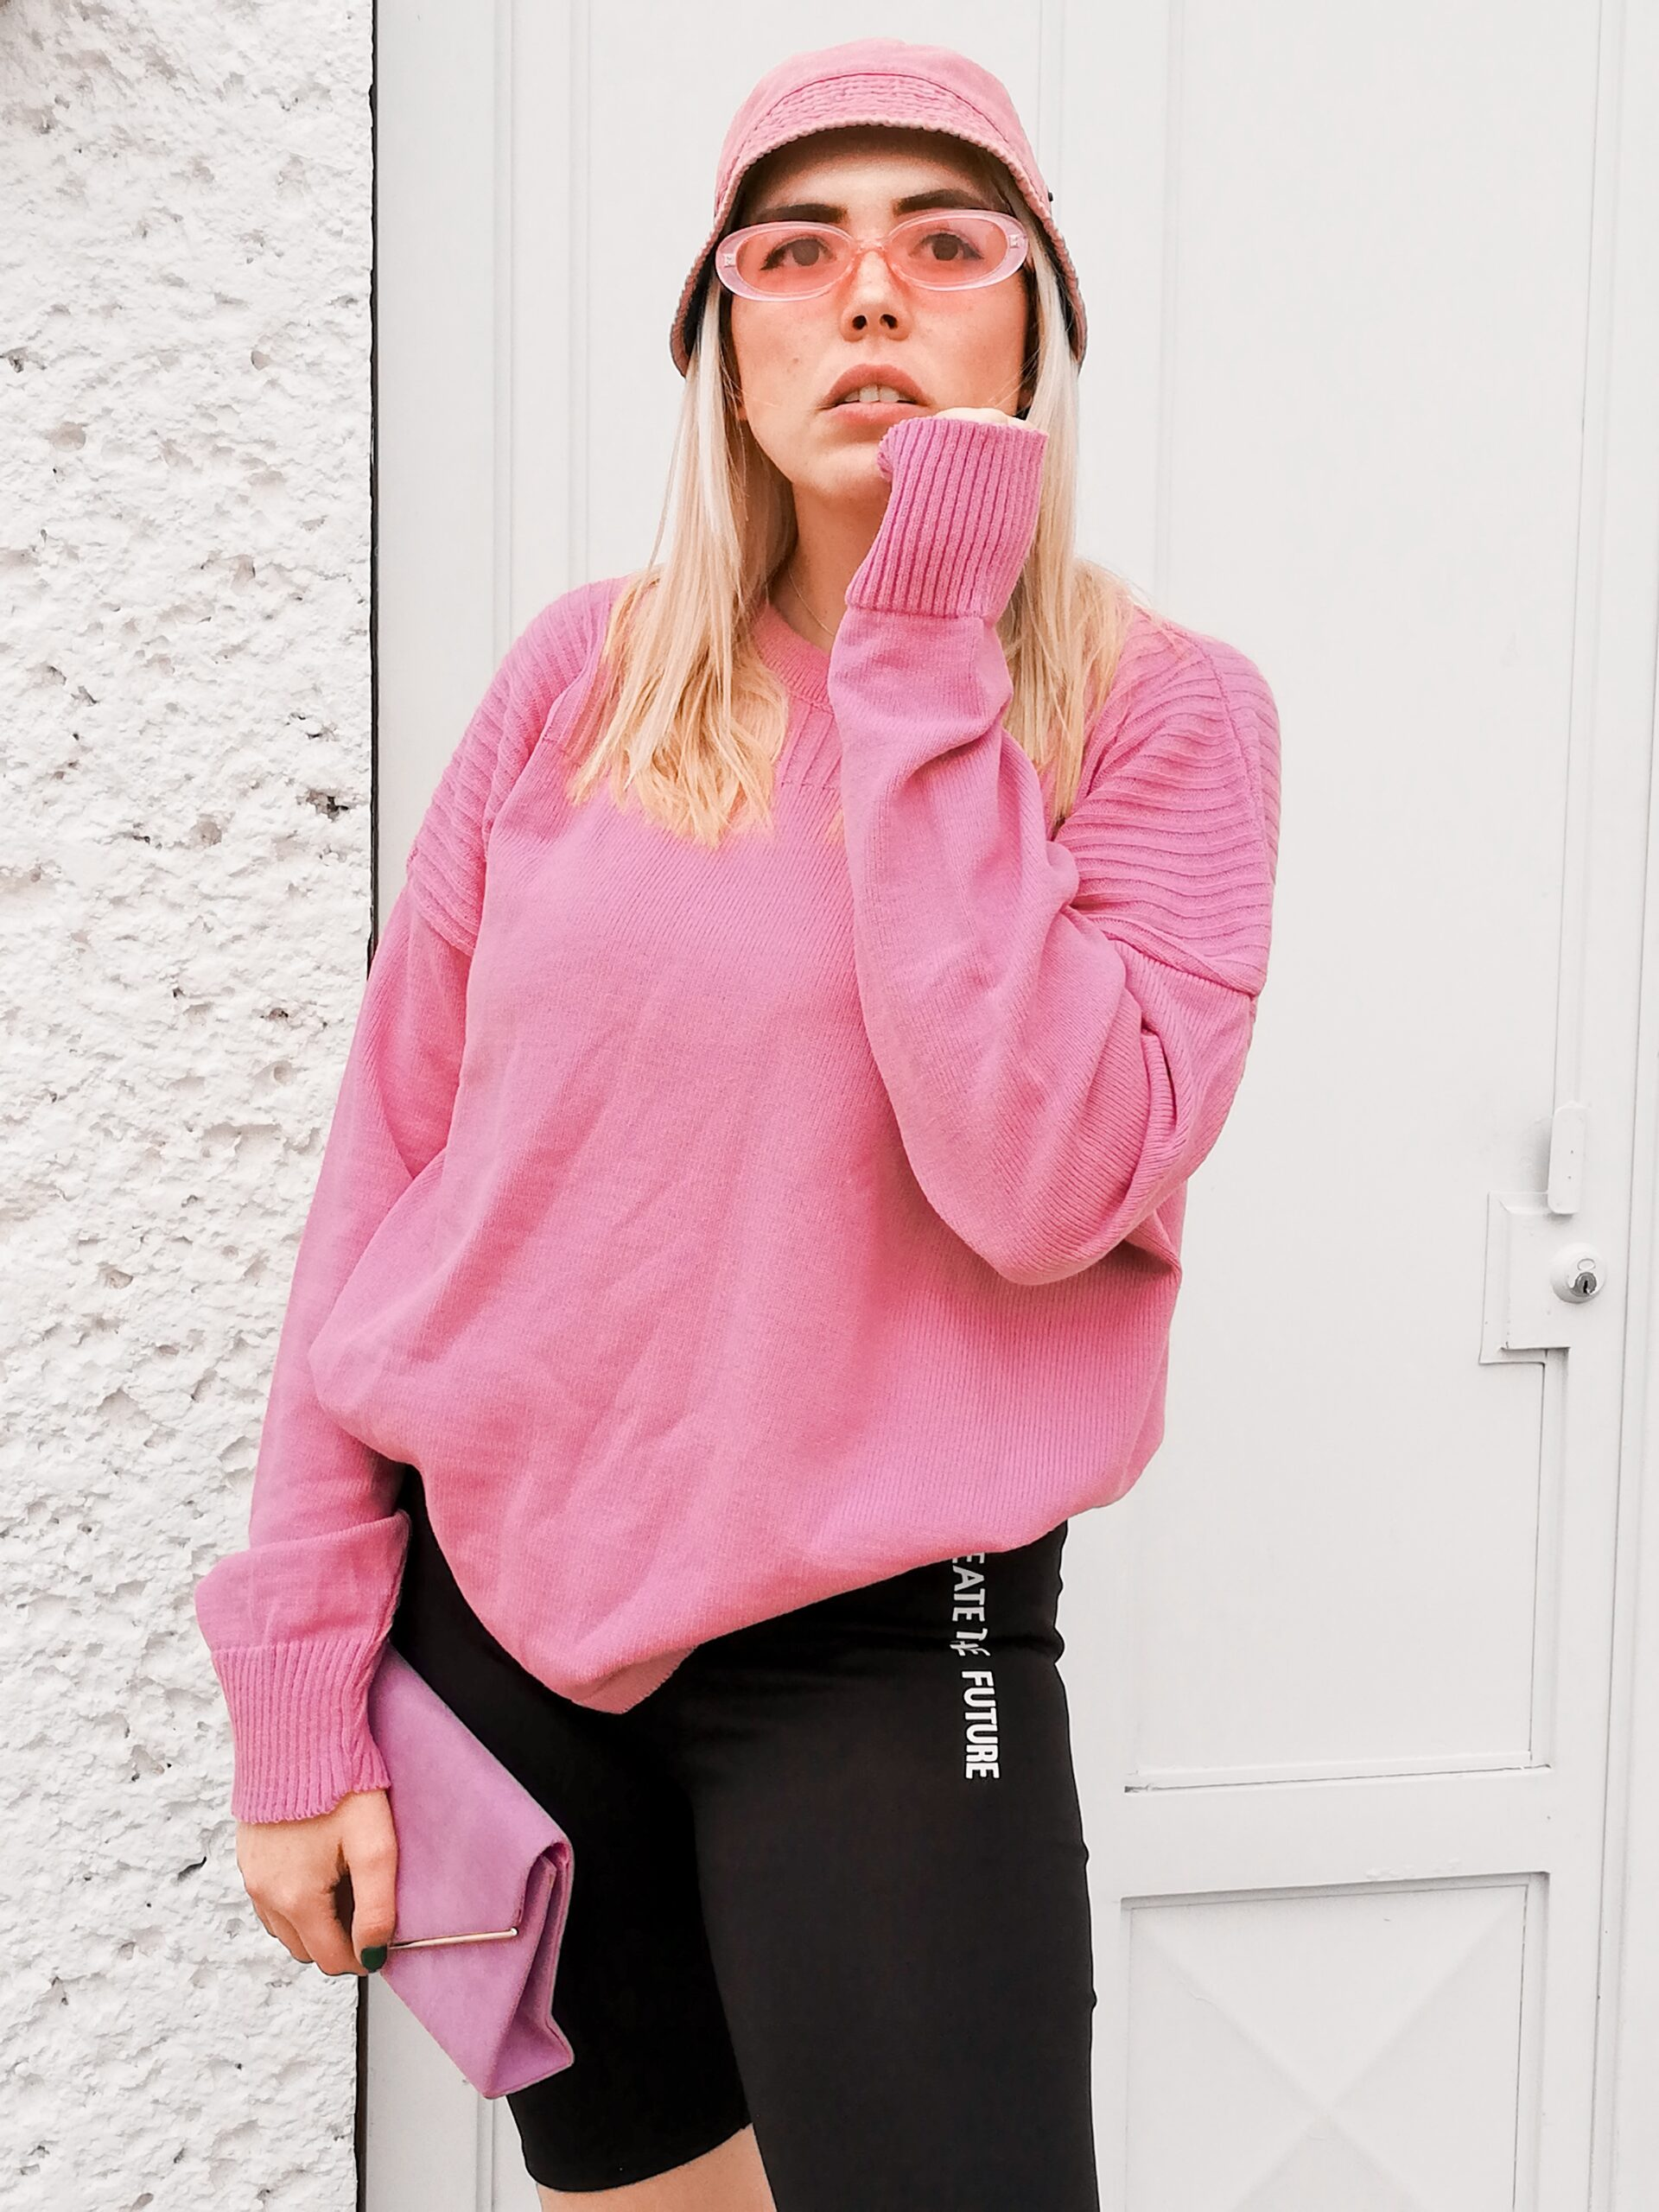 daniela, oversized sweater, pink, biker shorts, cycling shorts, bucket hat, pink sunglasses, lilac clutch, outfit, ideas, daniela soriano, femme luxe